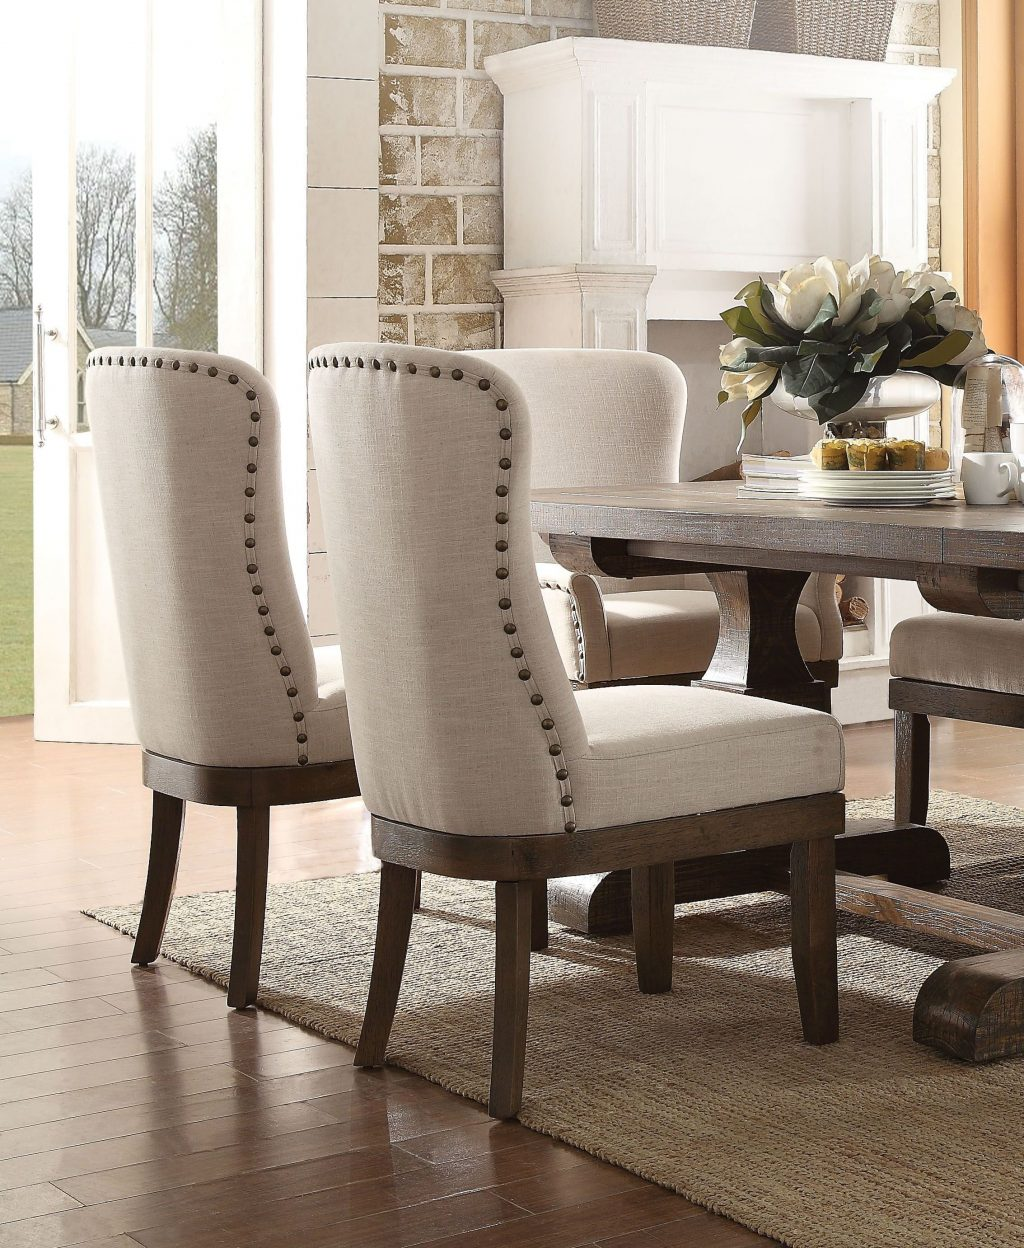 Gracie Oaks Onsted Upholstered Dining Chair Reviews Wayfair